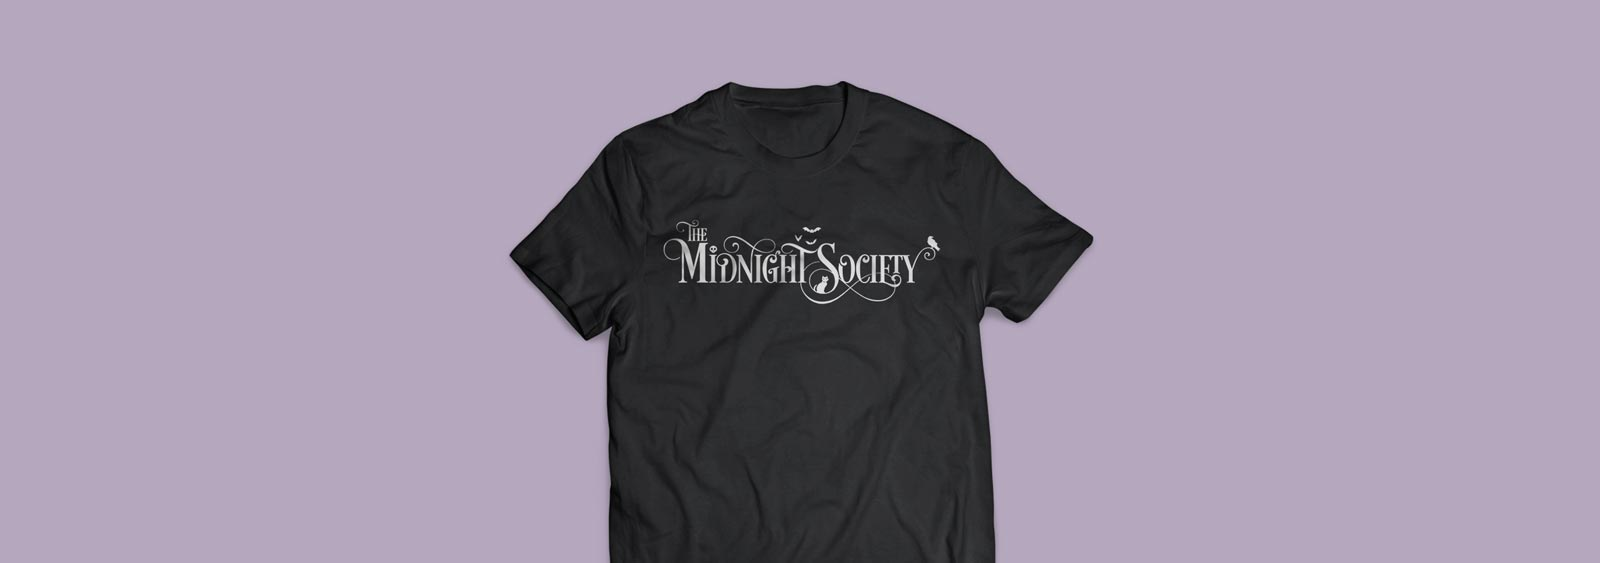 The Midnight Society logotype design by Noisy Ghost Co.